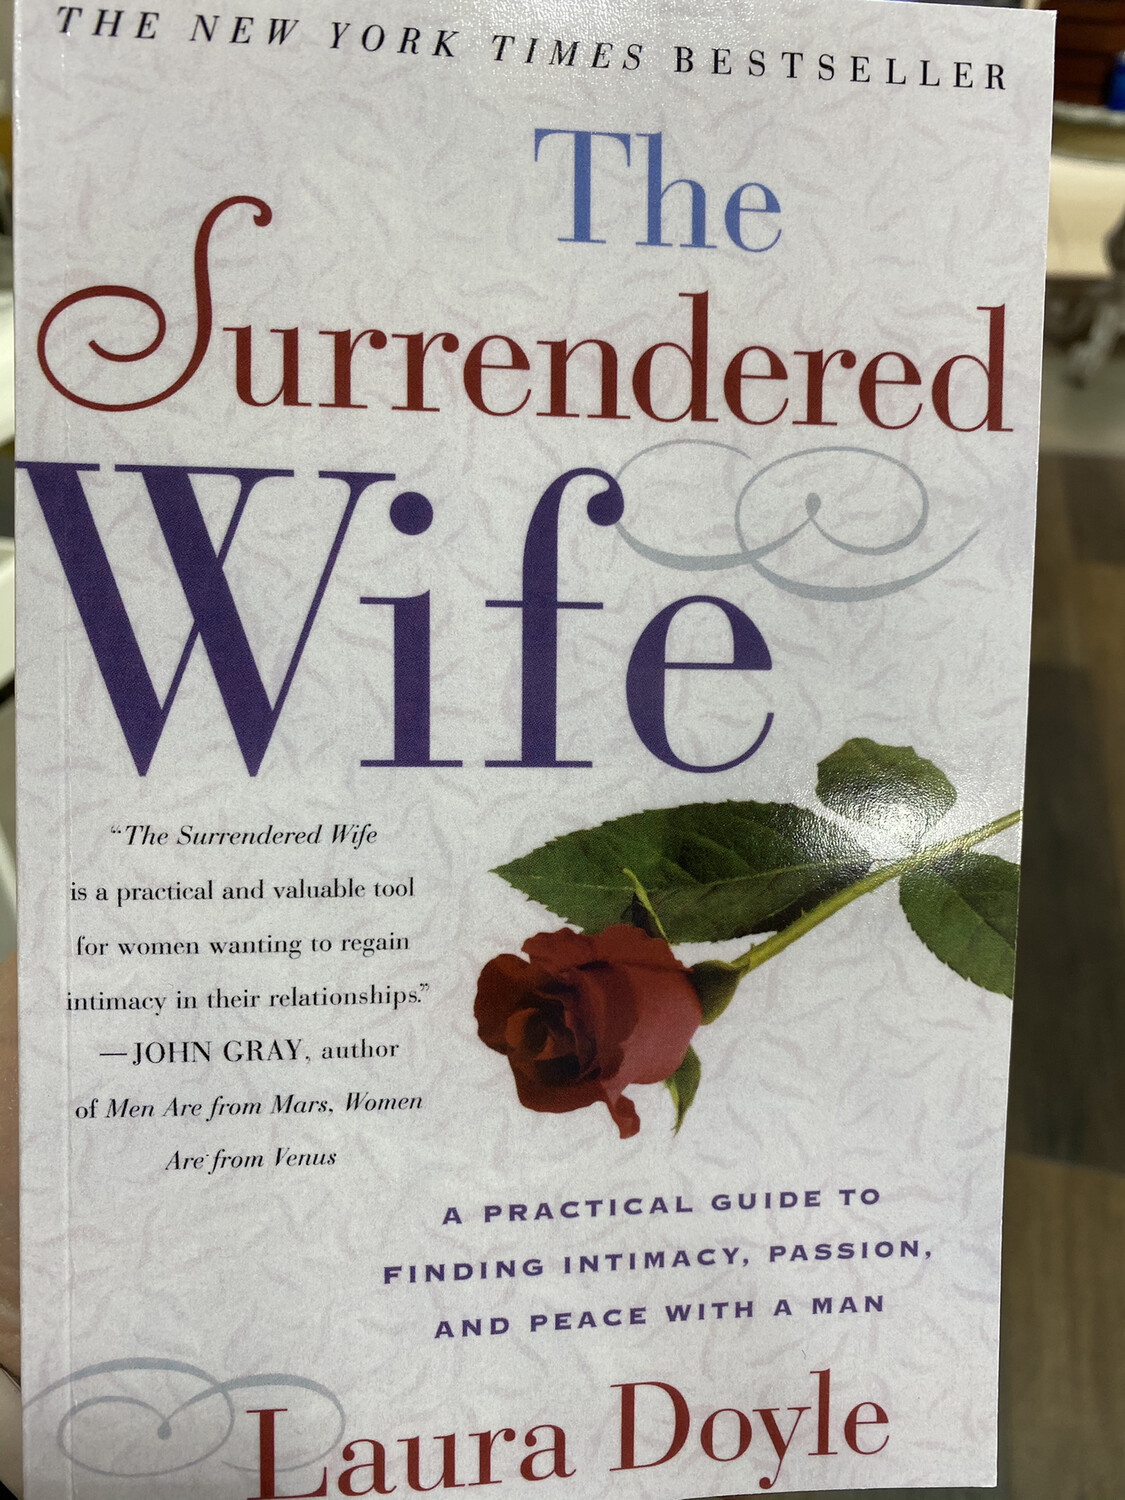 DOYLE, The Surrendered Wife